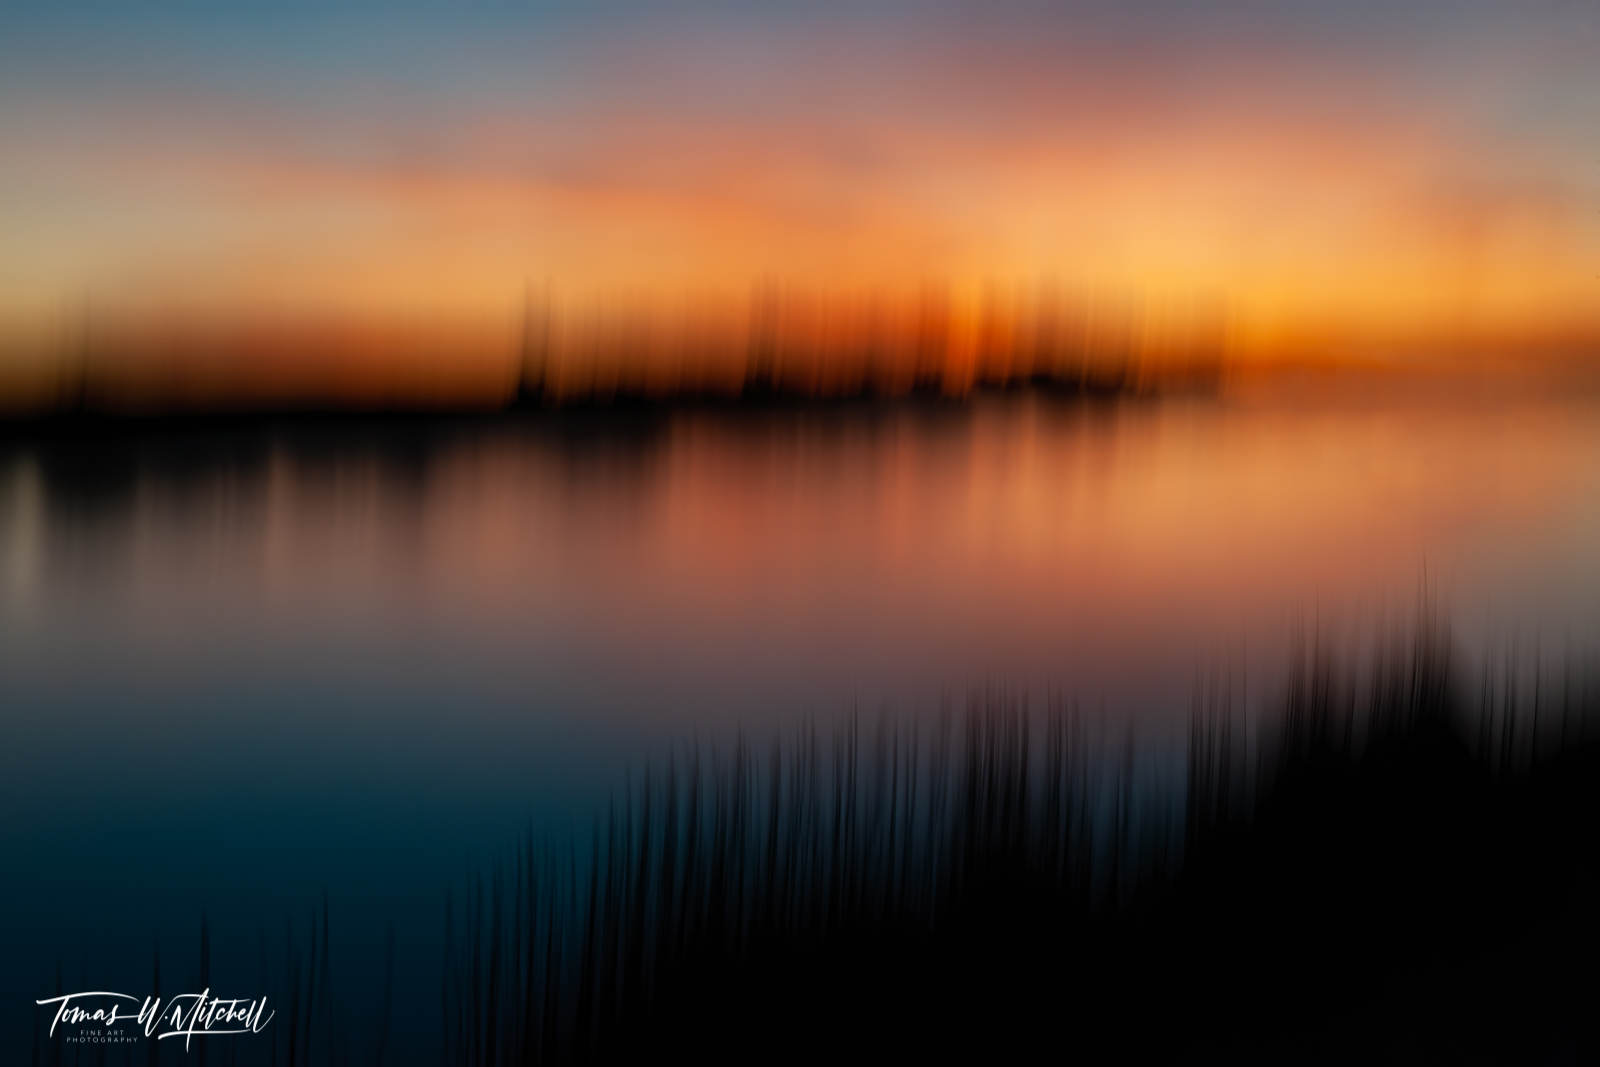 limited edition, fine art, prints, seedskadee national wildlife refuge, wyoming, green river, summer, sunset, cattails, abstract, icm, reflection, photograph, photo